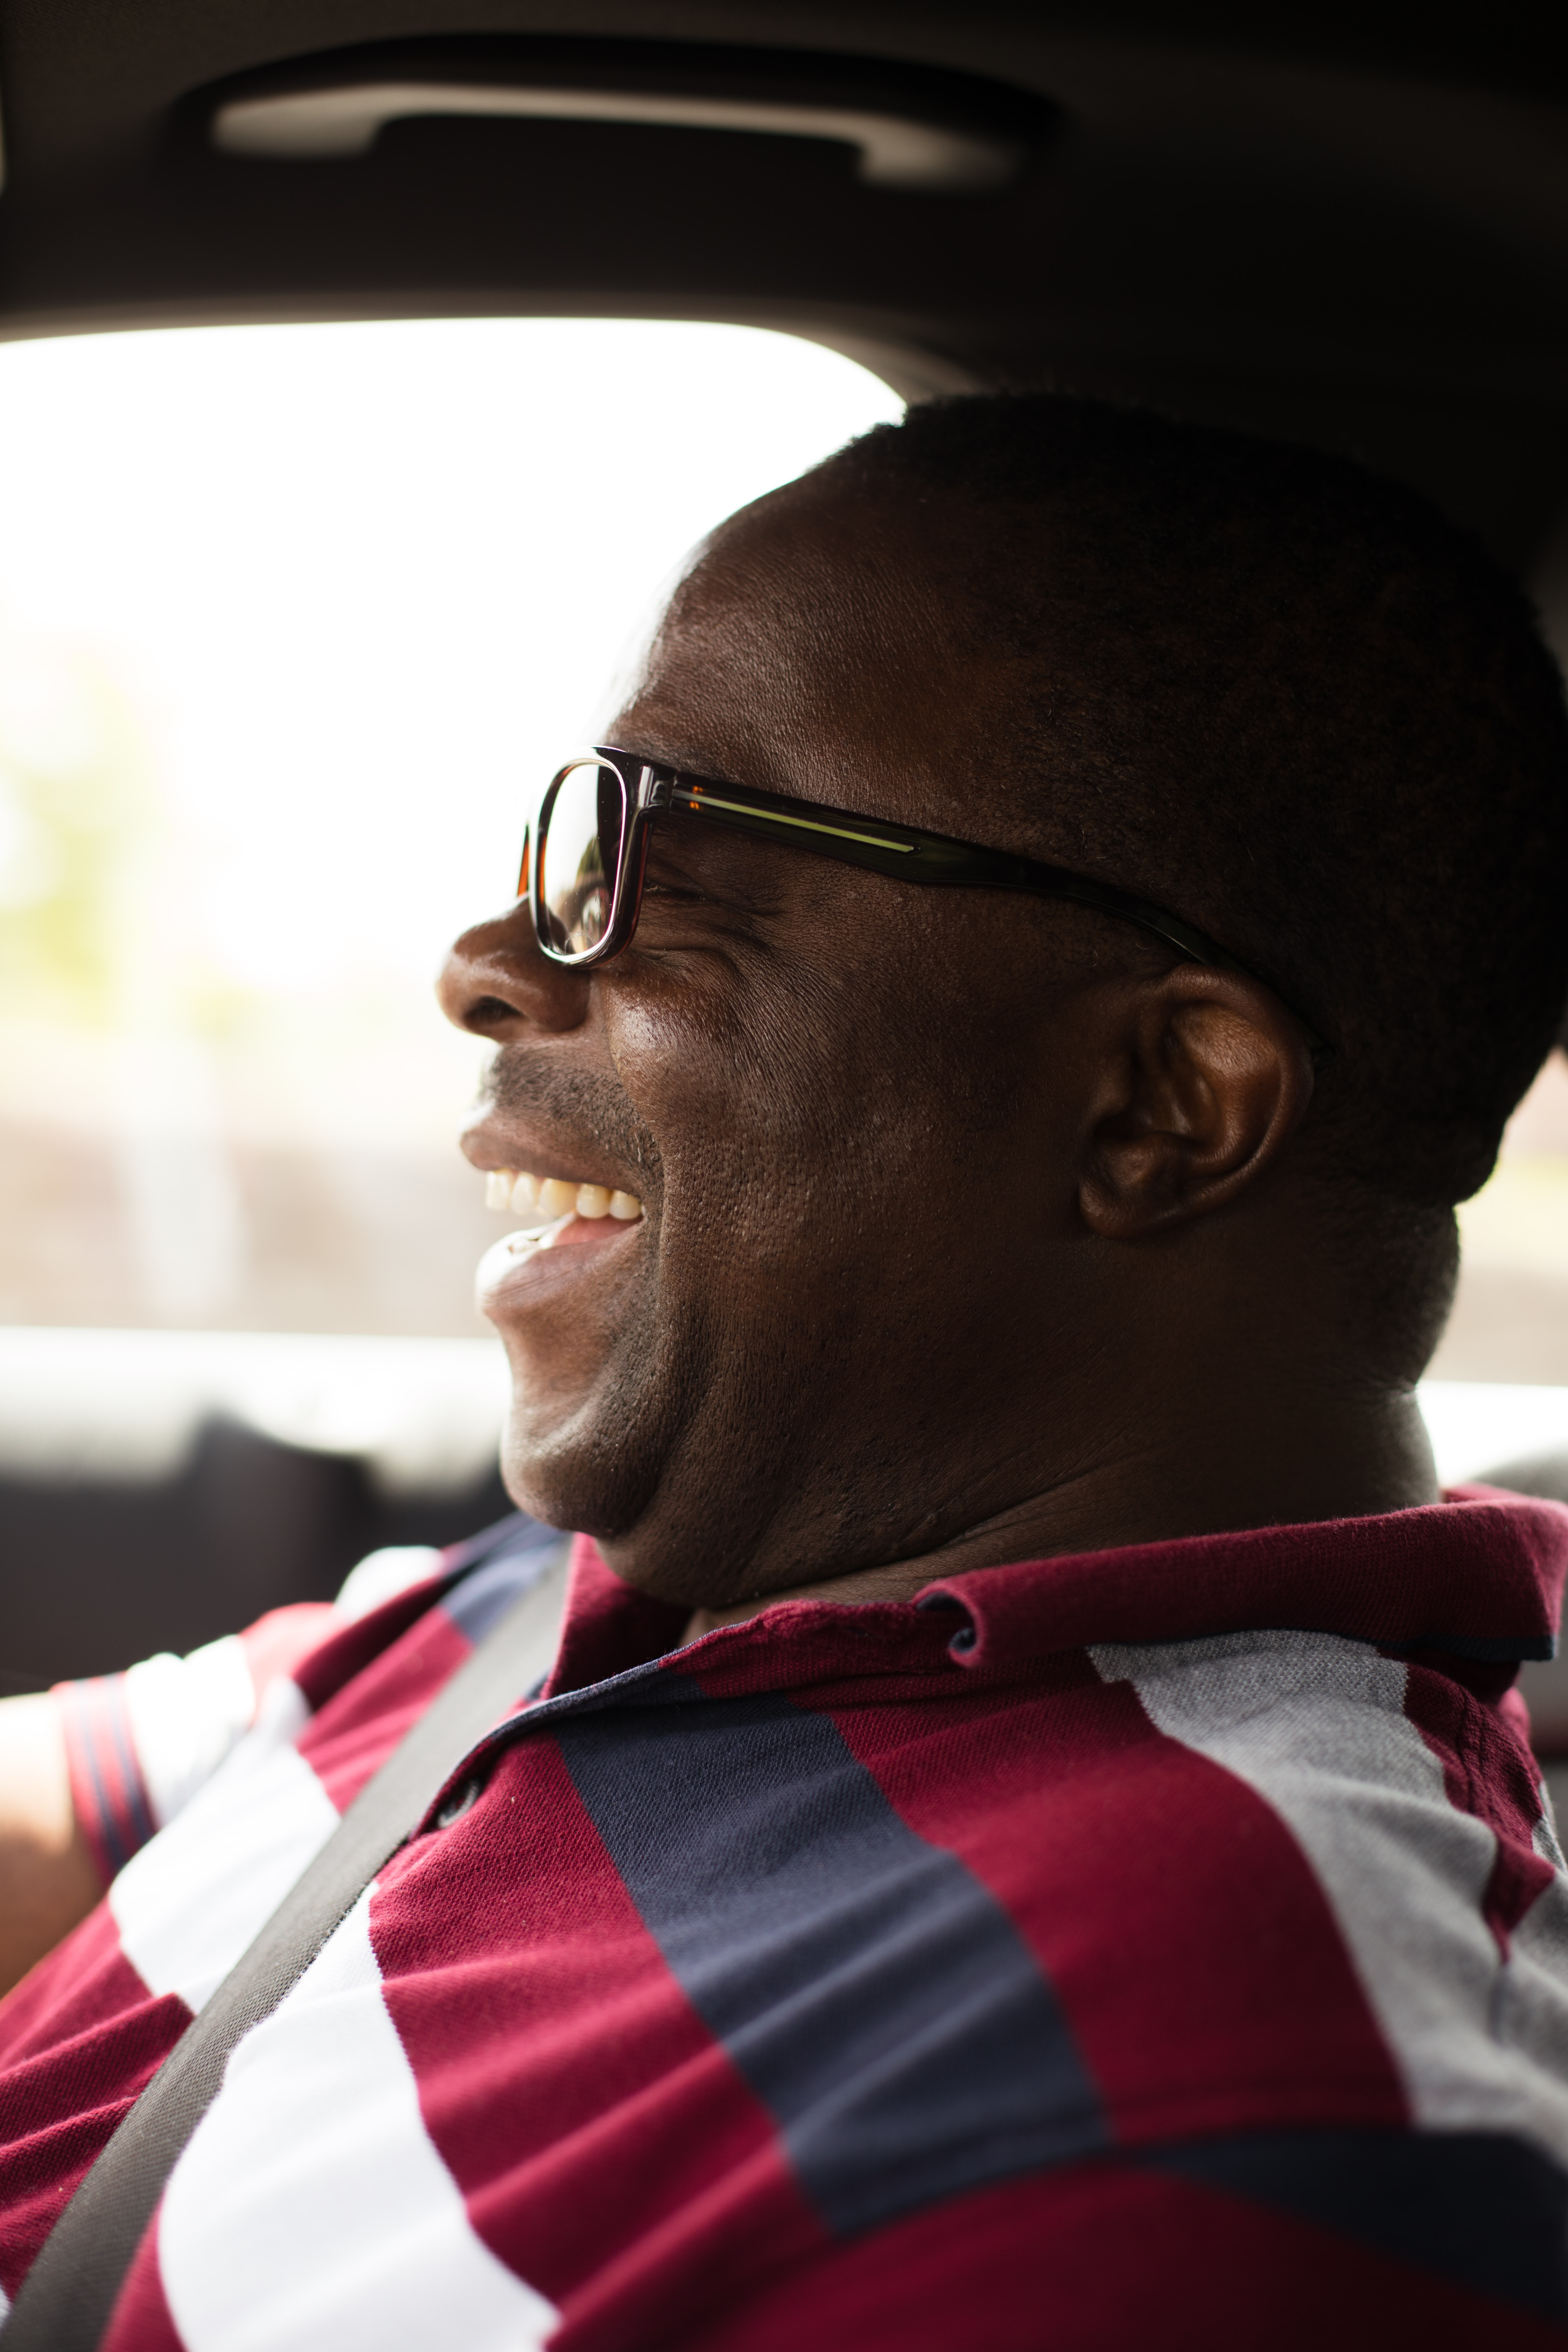 laughing man wearing eyeglasses inside vehicle